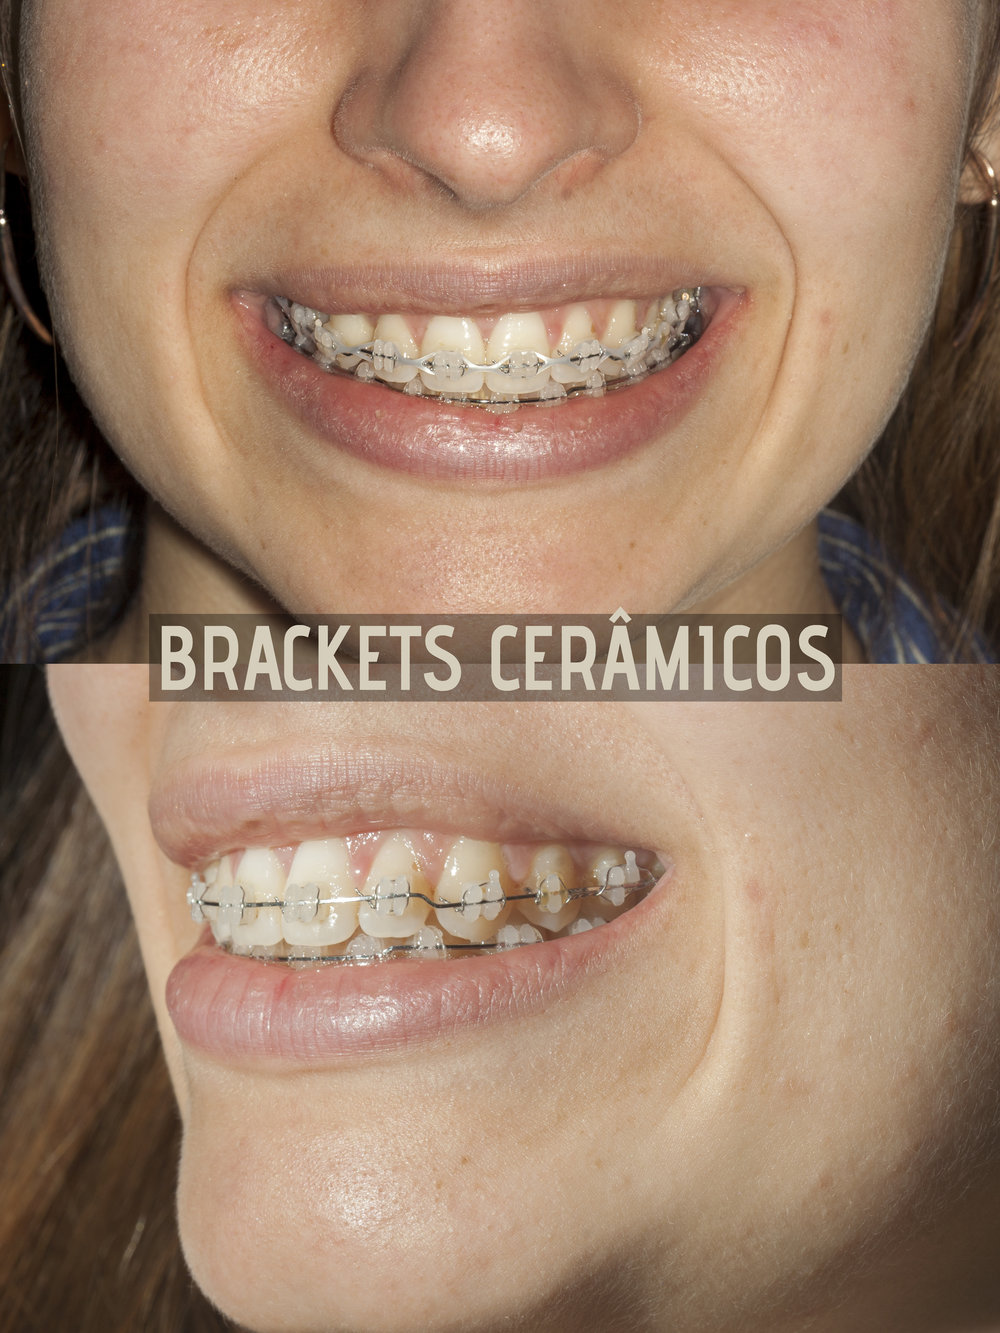 brackets cerâmicos final leo.jpg